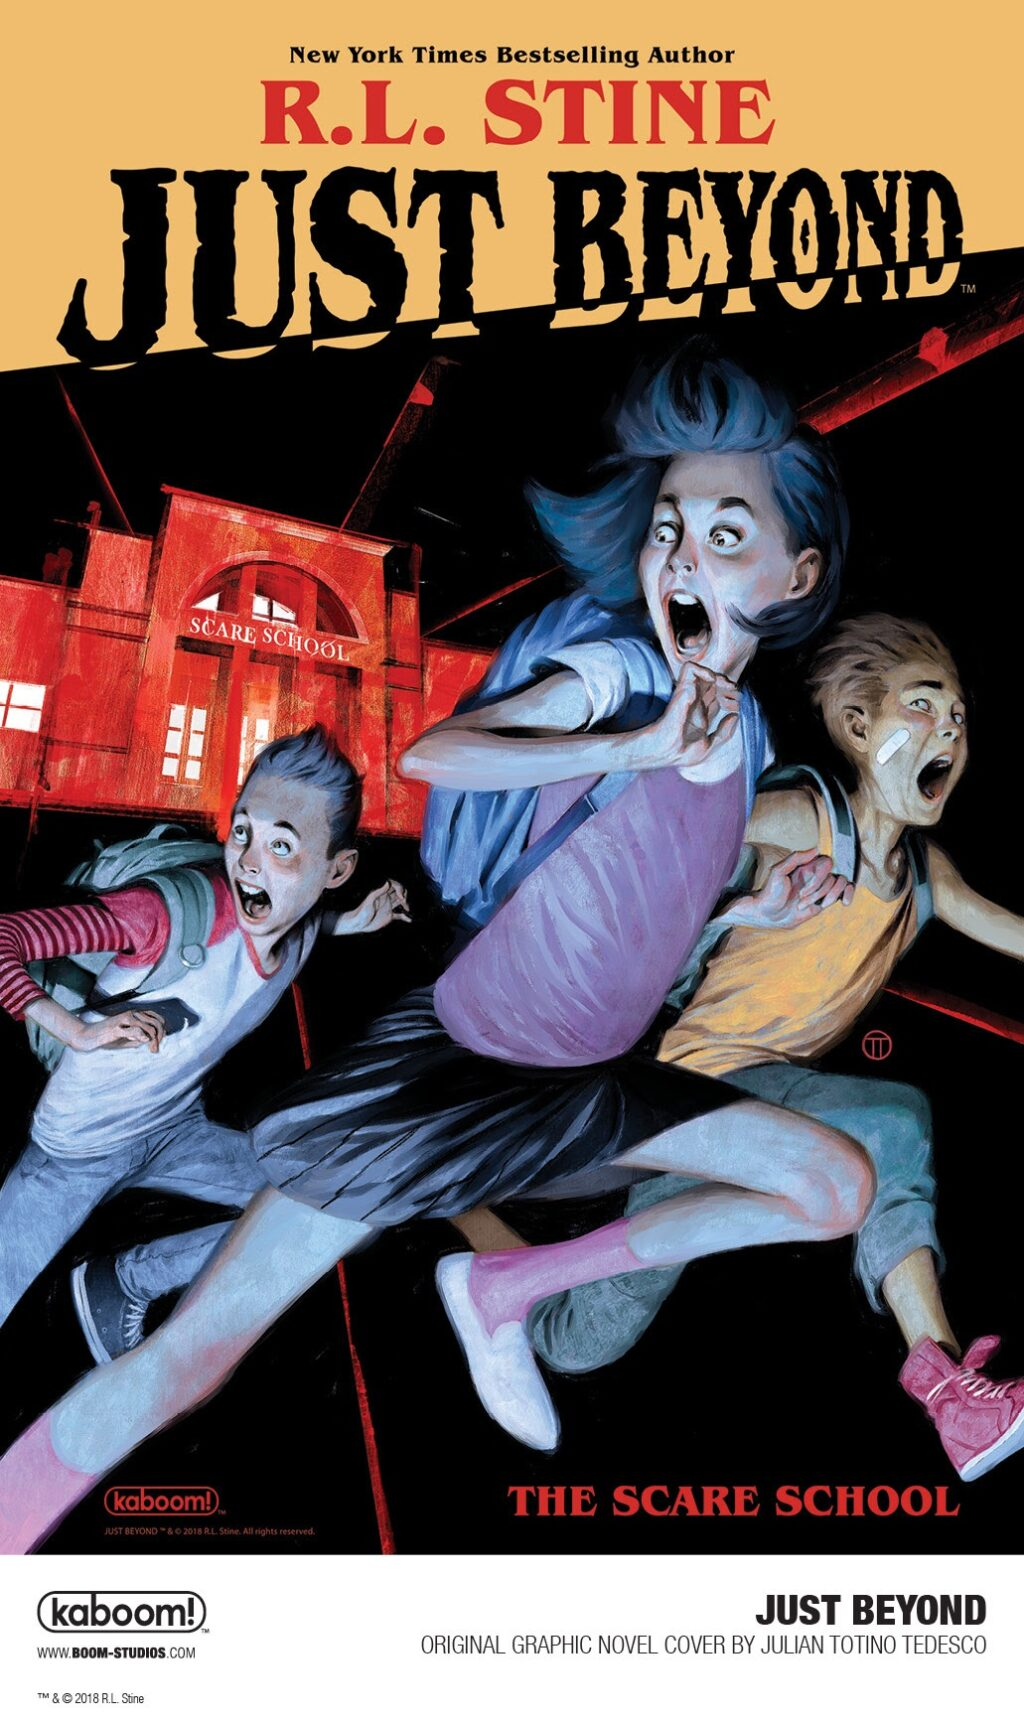 Just Beyond The Scare School 1 1024x1722 - Gallery: First Look at R.L. Stine's JUST BEYOND: THE SCARE SCHOOL Original Graphic Novel